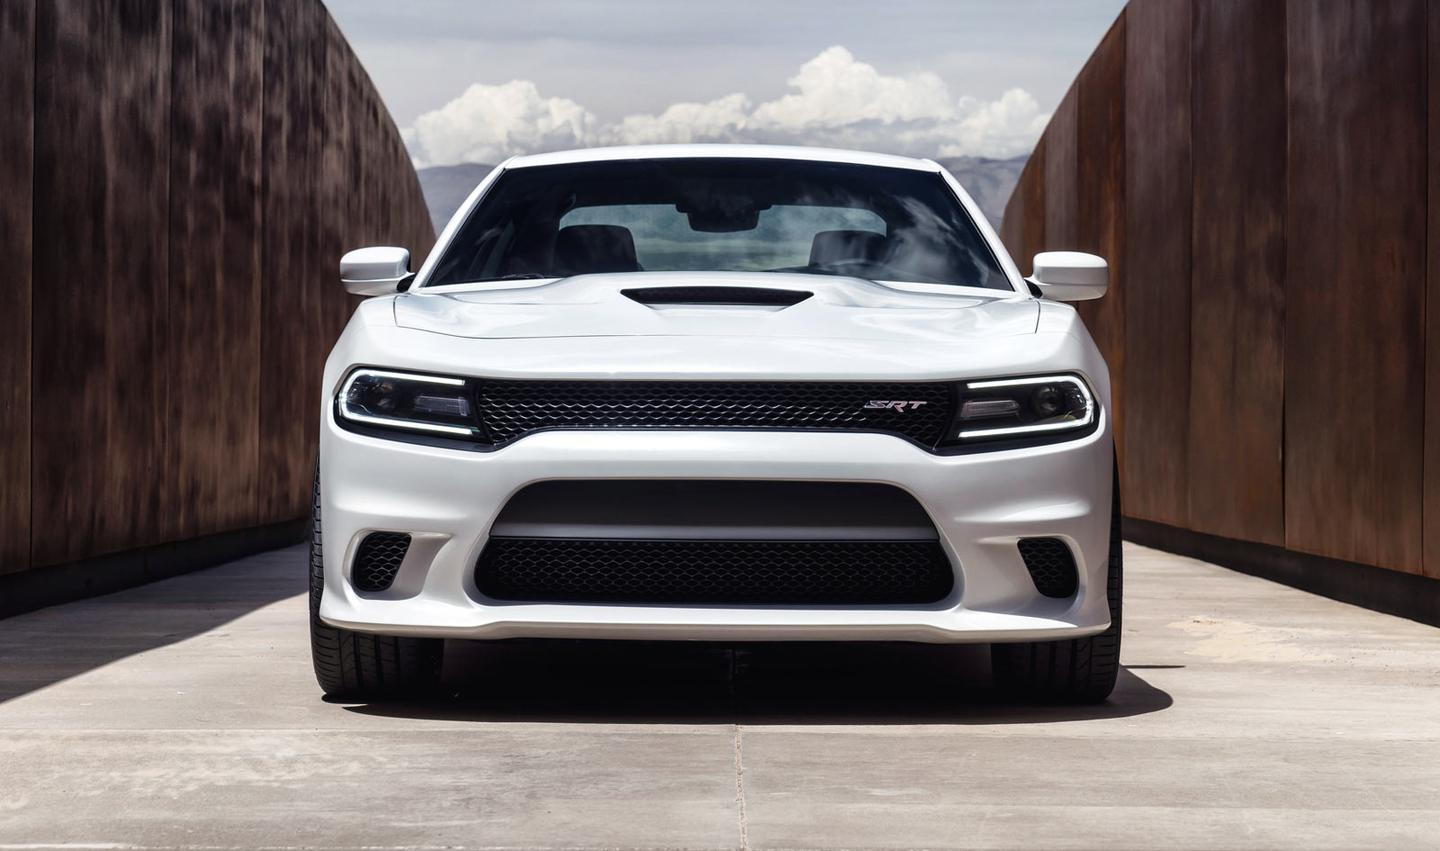 The Charger SRT Hellcat is the fastest factory sedan ever